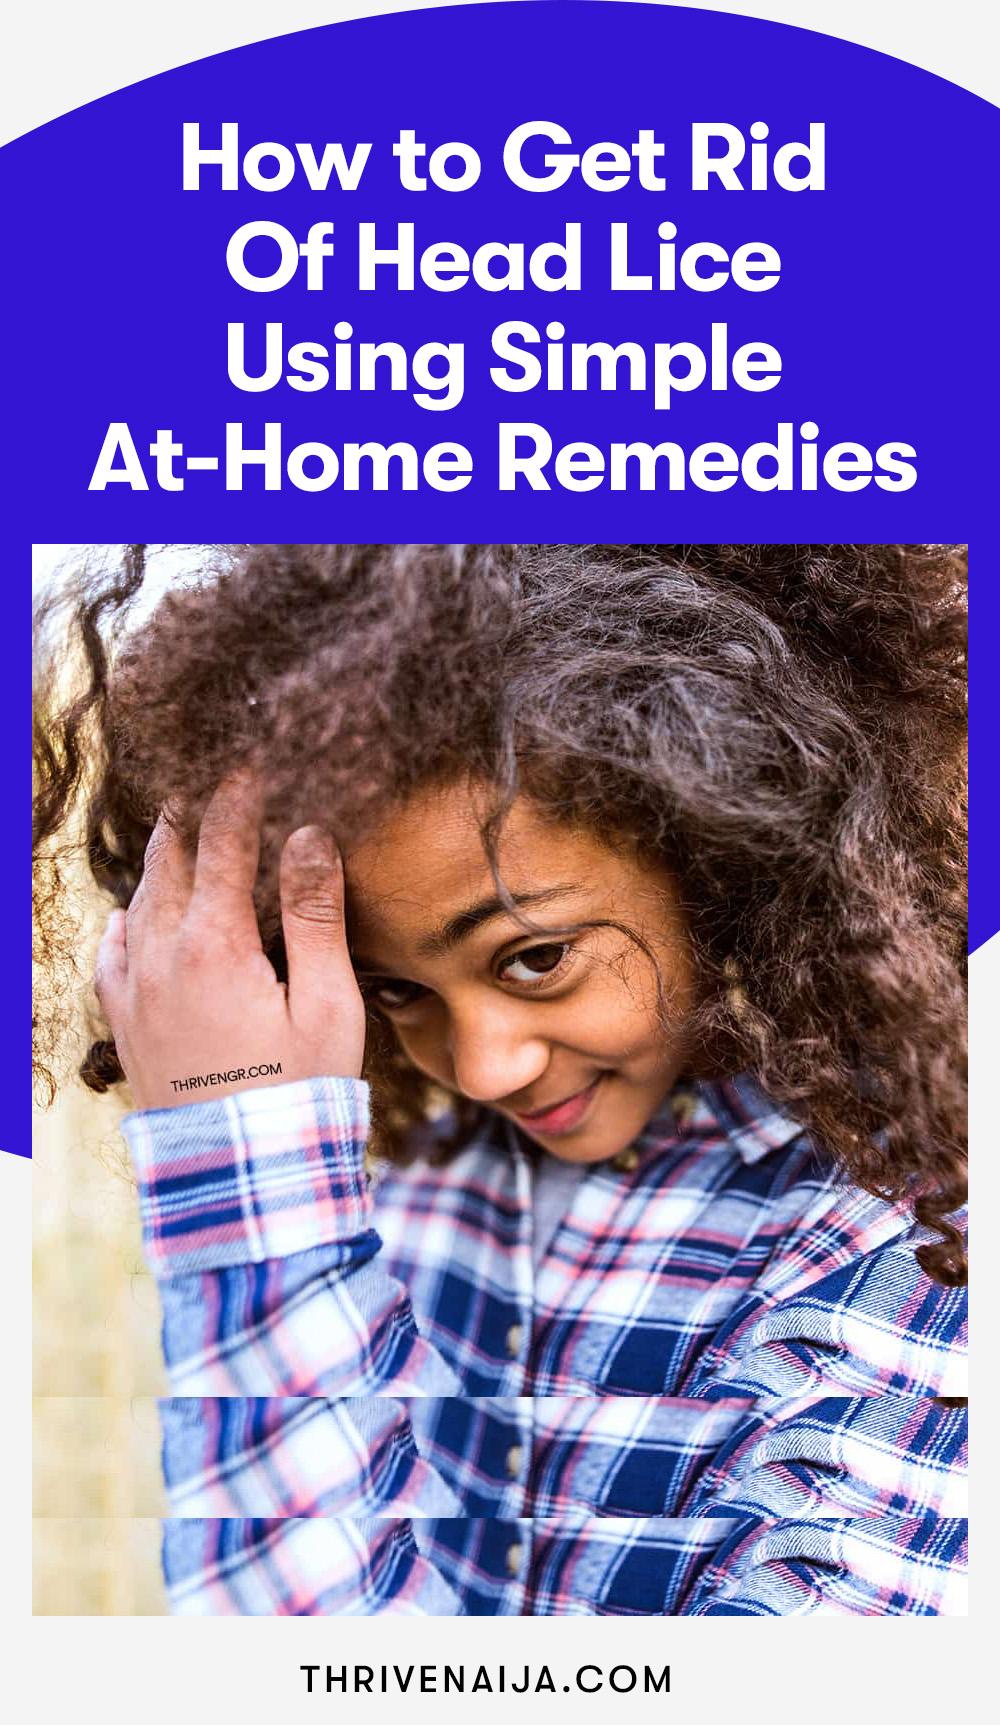 How to Get Rid Of Head Lice Using Simple At-Home Remedies